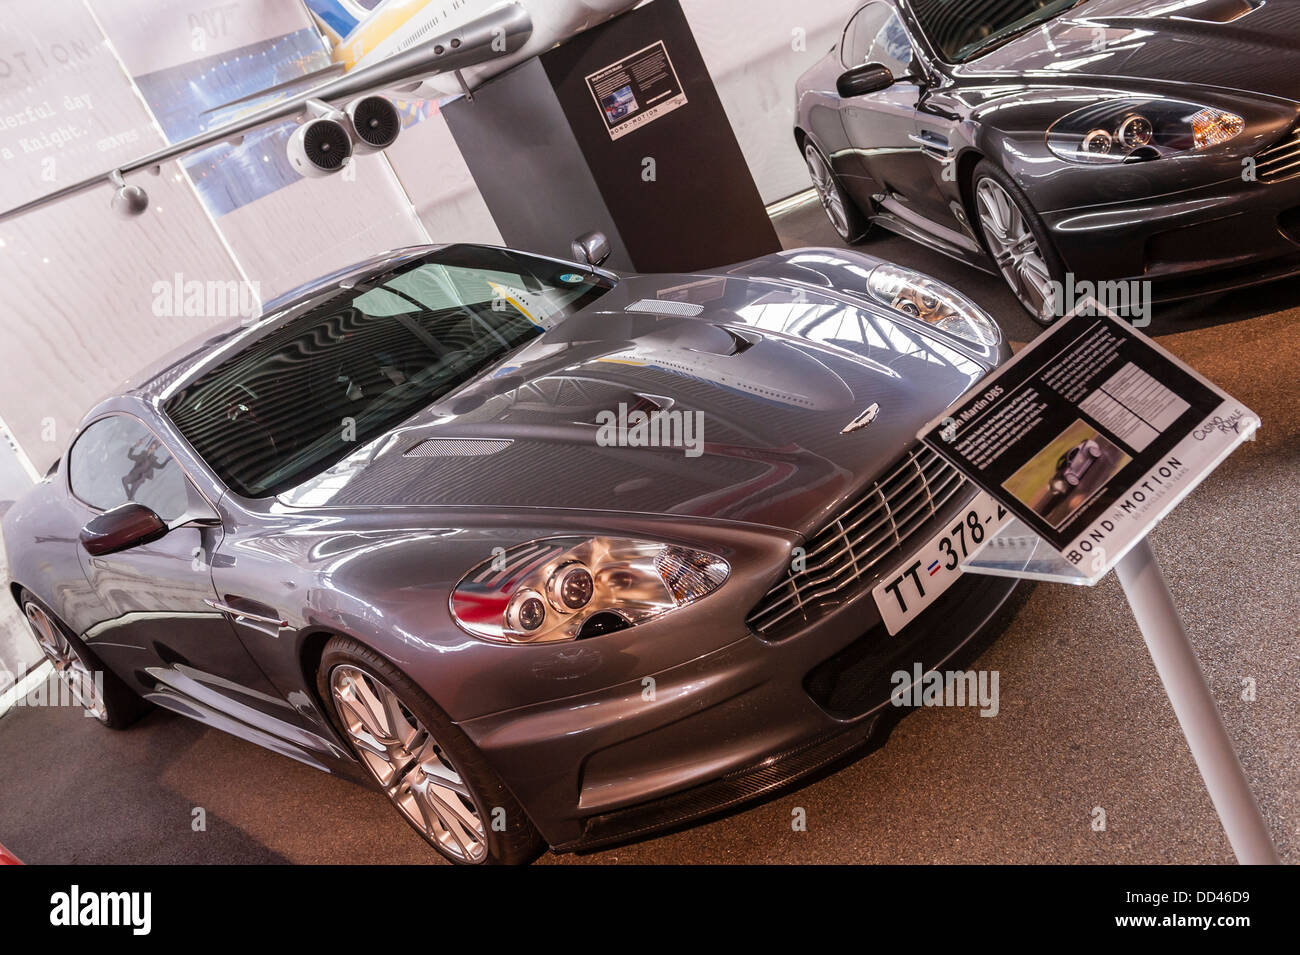 the james bond 007 film cars exhibit inside the national motor museum stock photo royalty free. Black Bedroom Furniture Sets. Home Design Ideas